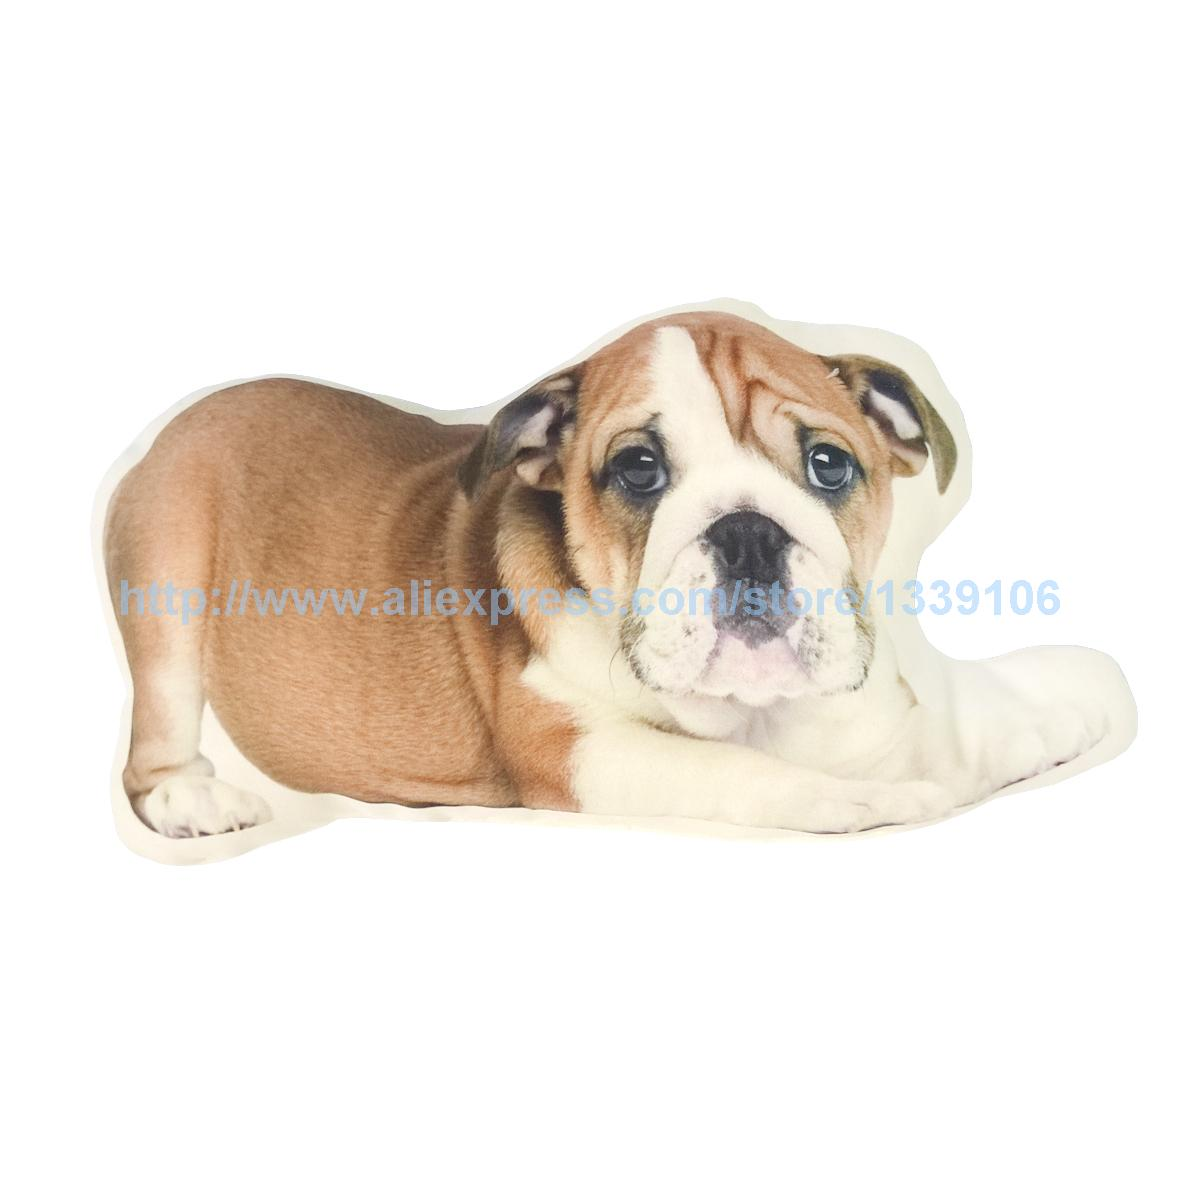 Lovely brown dog Print Custom Home Decorative Throw Pillow Cover Decorate Pillow Sofa Chair Cushion